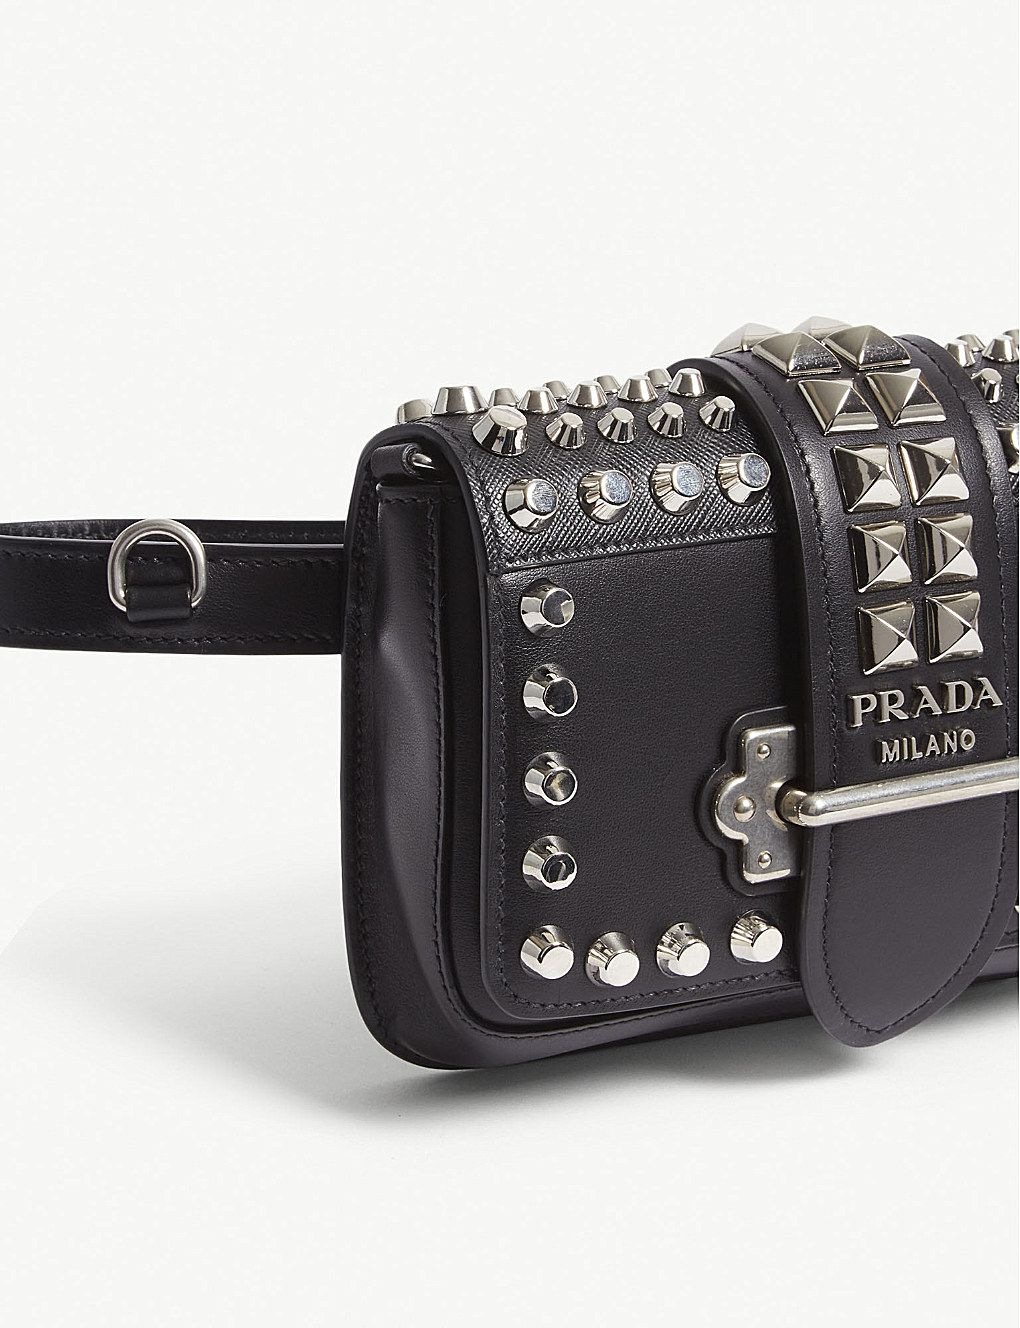 9015b25ad187c6 Prada | Cahier Studded Leather Belt Bag | Handbags & Wallets in 2019 ...